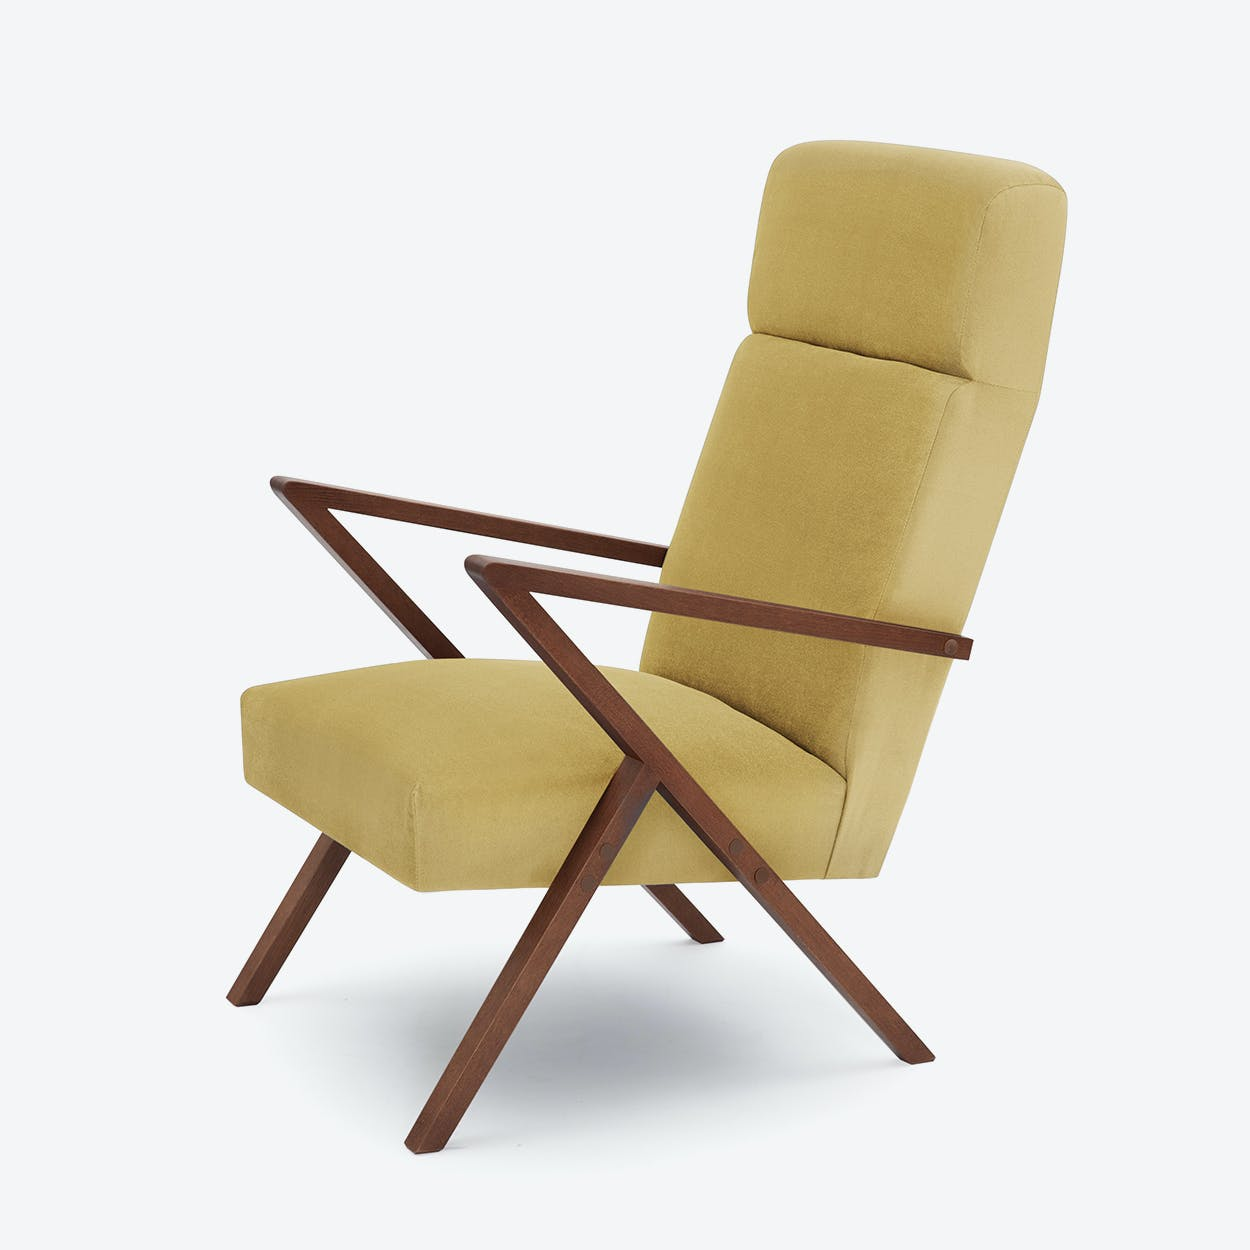 Retrostar Lounge Chair - Velvet-Line in Lemon-Yellow